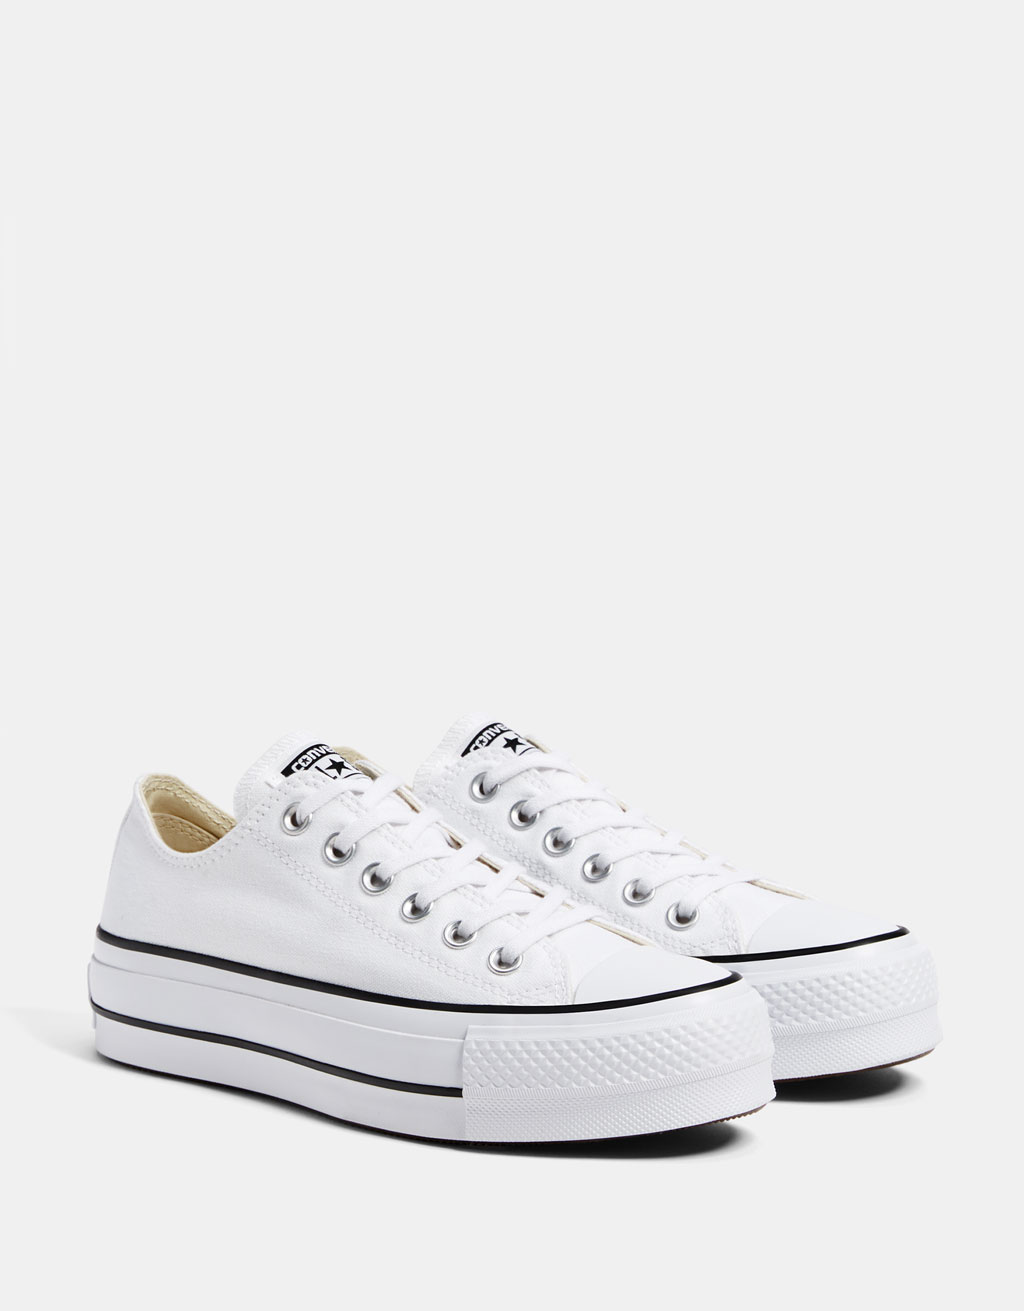 3ecdd7cb42e3 CONVERSE CHUCK TAYLOR ALL STAR platform trainers - SHOES - Bershka Spain -  Canary Islands